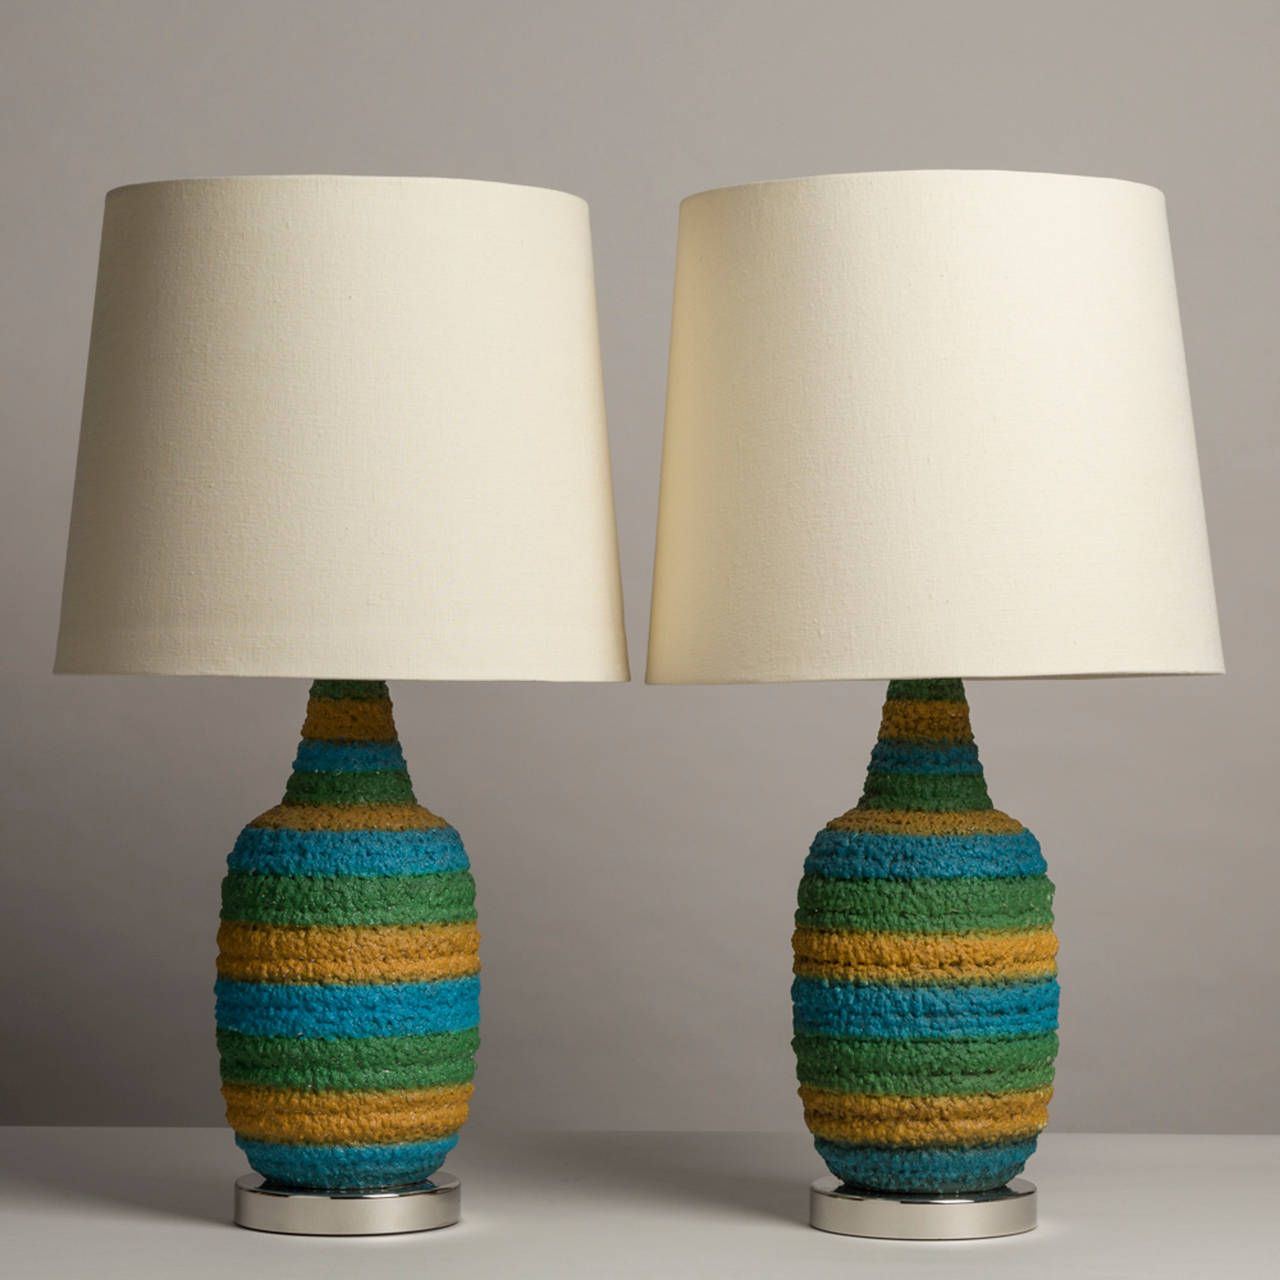 A pair of textured blue and green ceramic table lamps 1960s a pair of textured blue and green ceramic table lamps 1960s mozeypictures Image collections